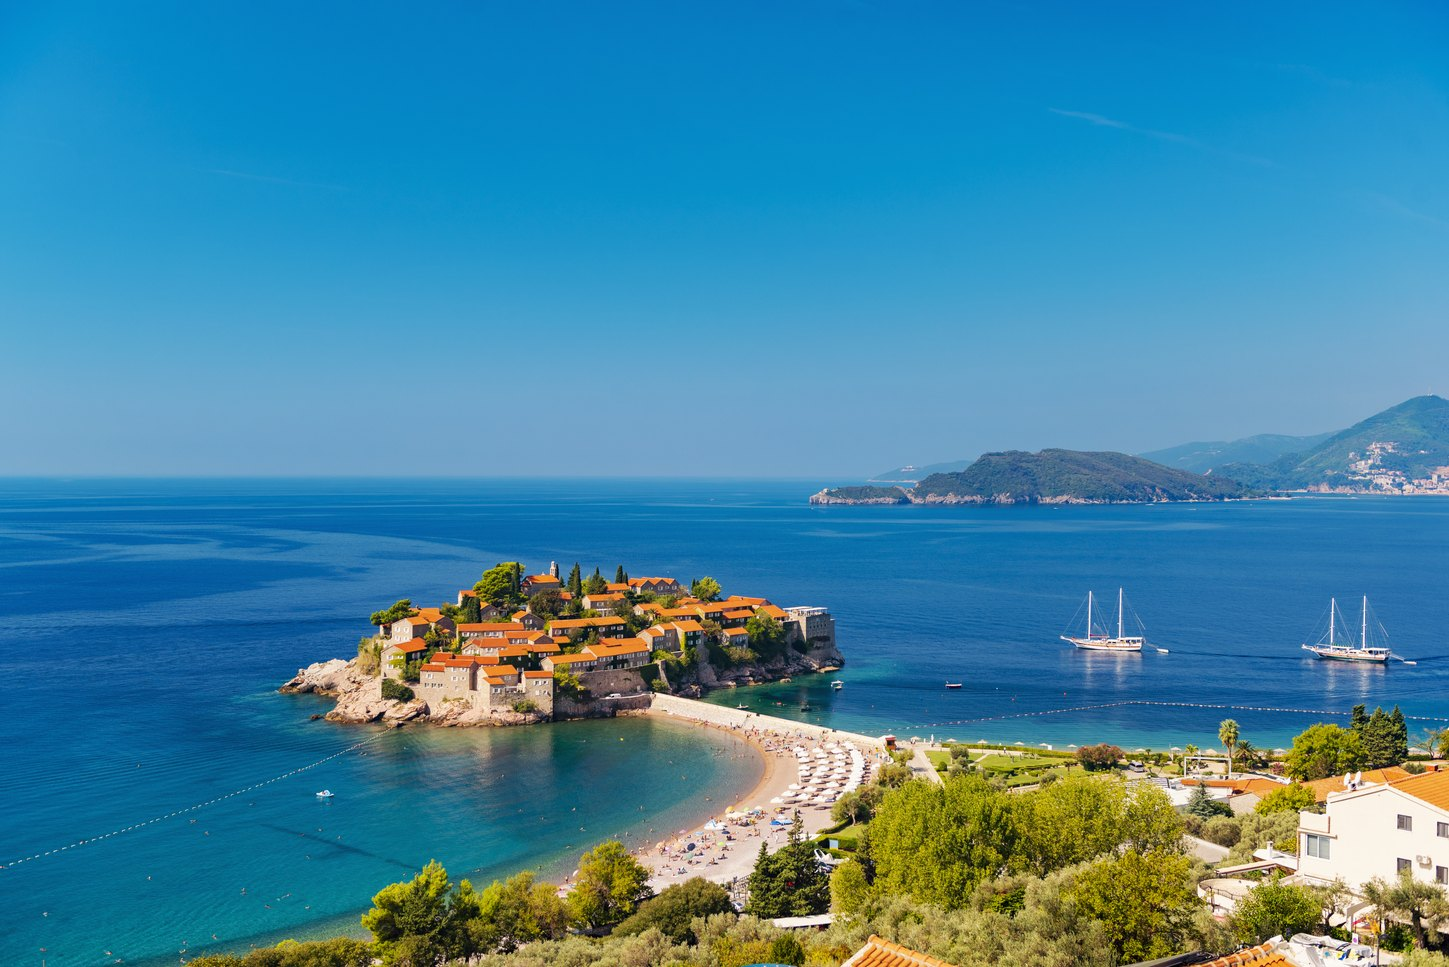 Things to see & do in Montenegro